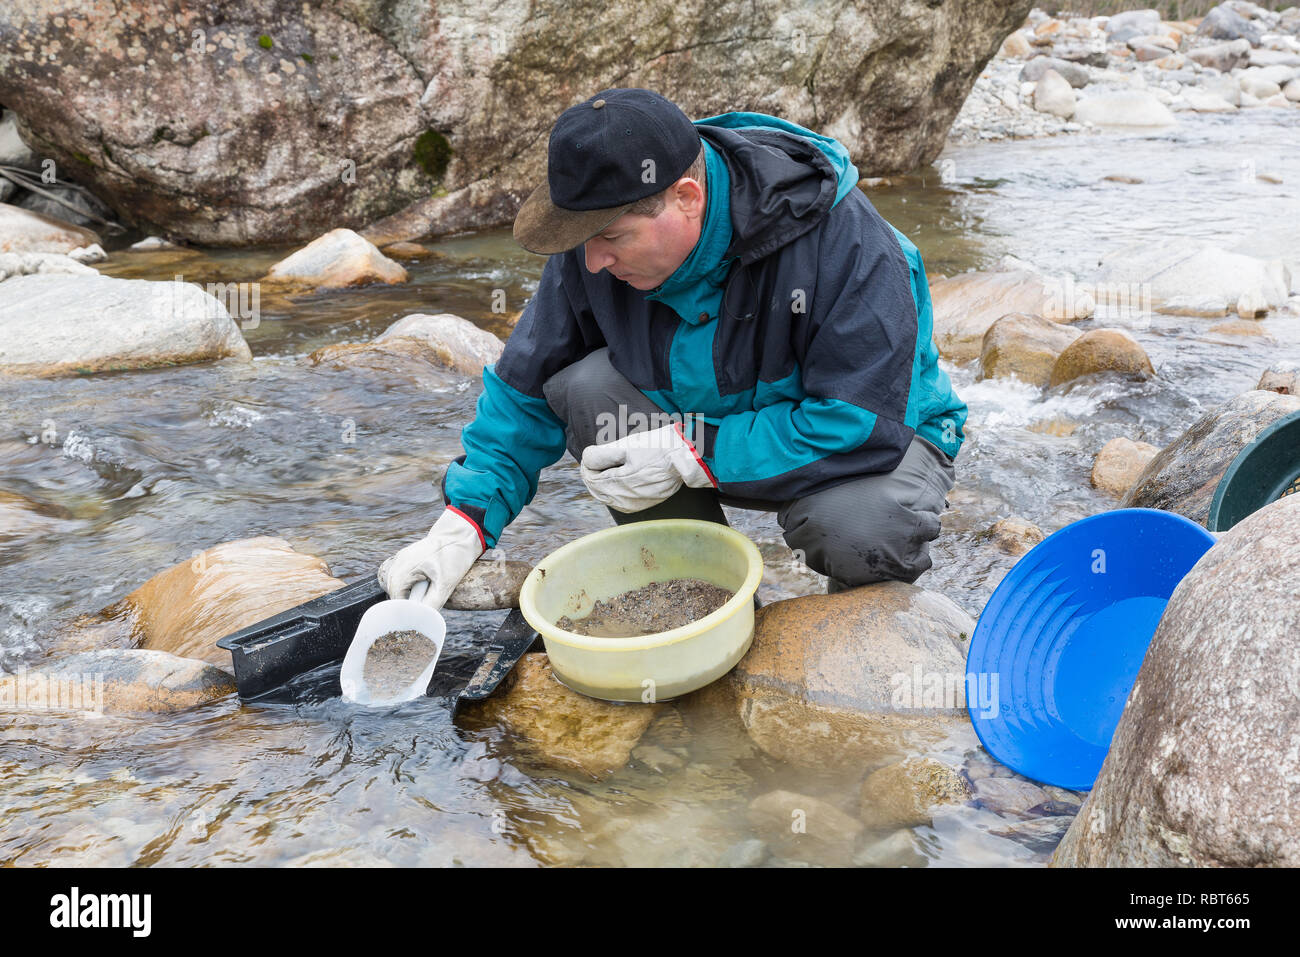 Adventures on the river. Modern alluvial gold prospector - Stock Image